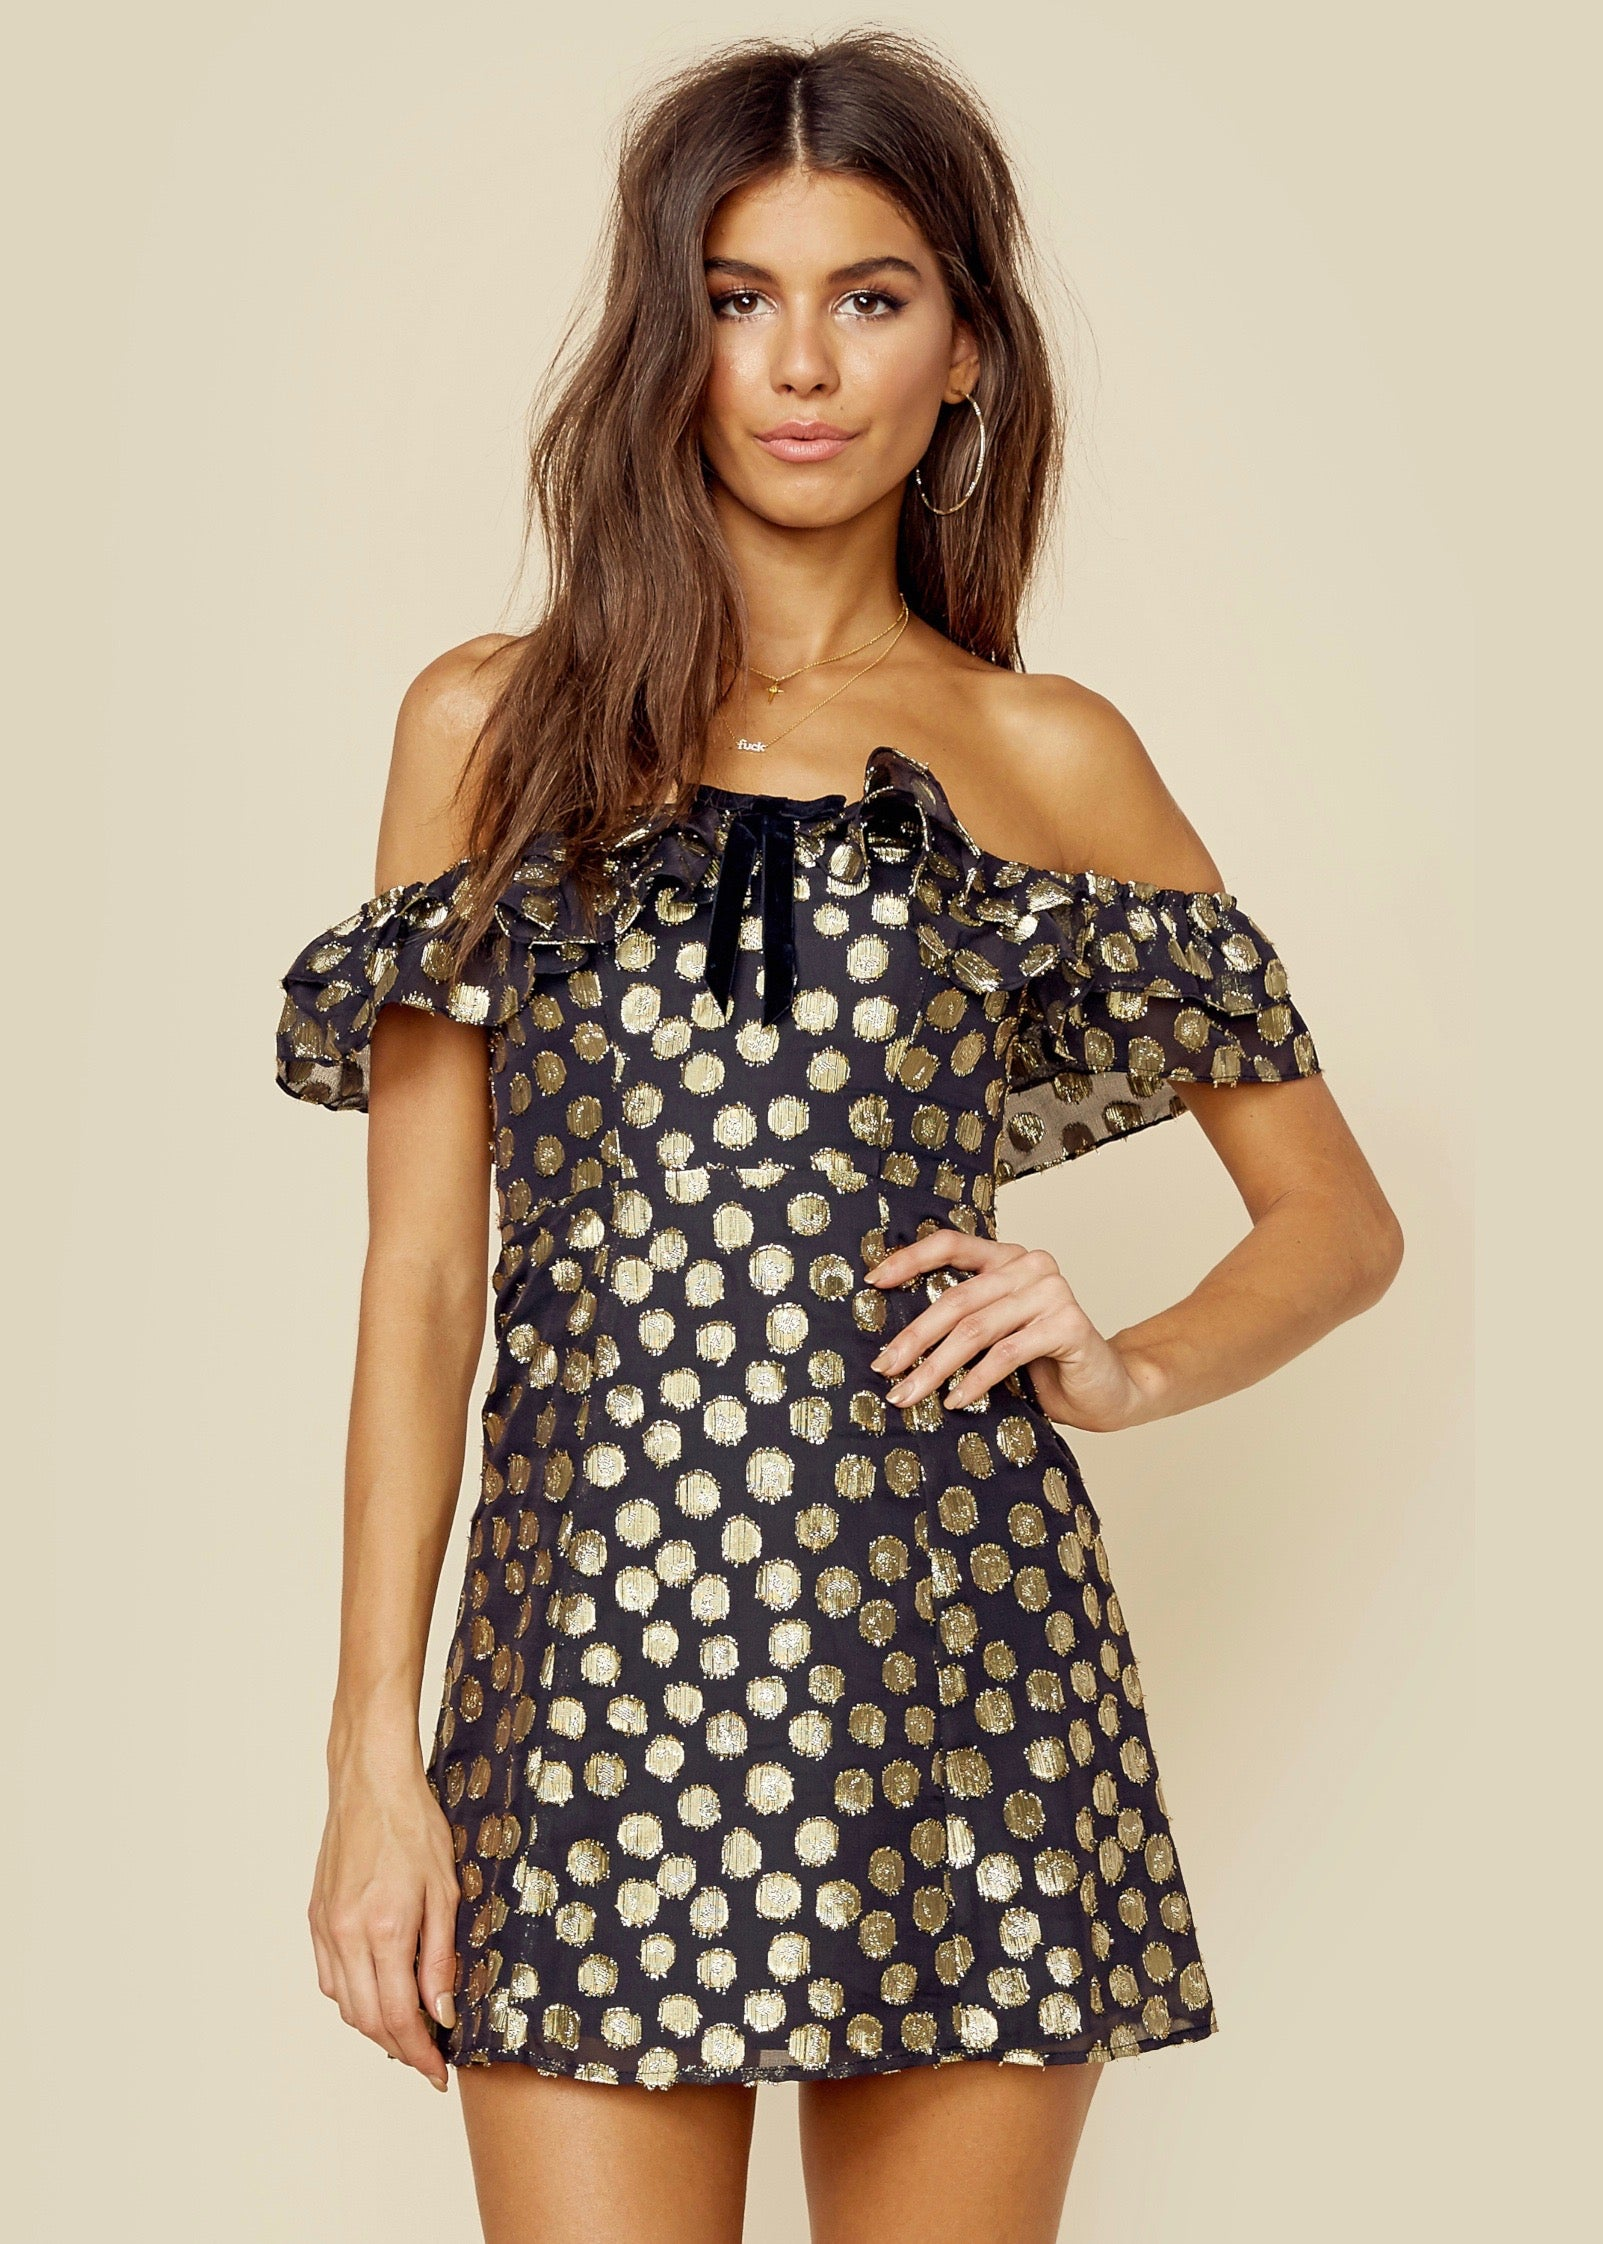 For Love and Lemons Lottie Ruffle Mini Dress - Gold Dot